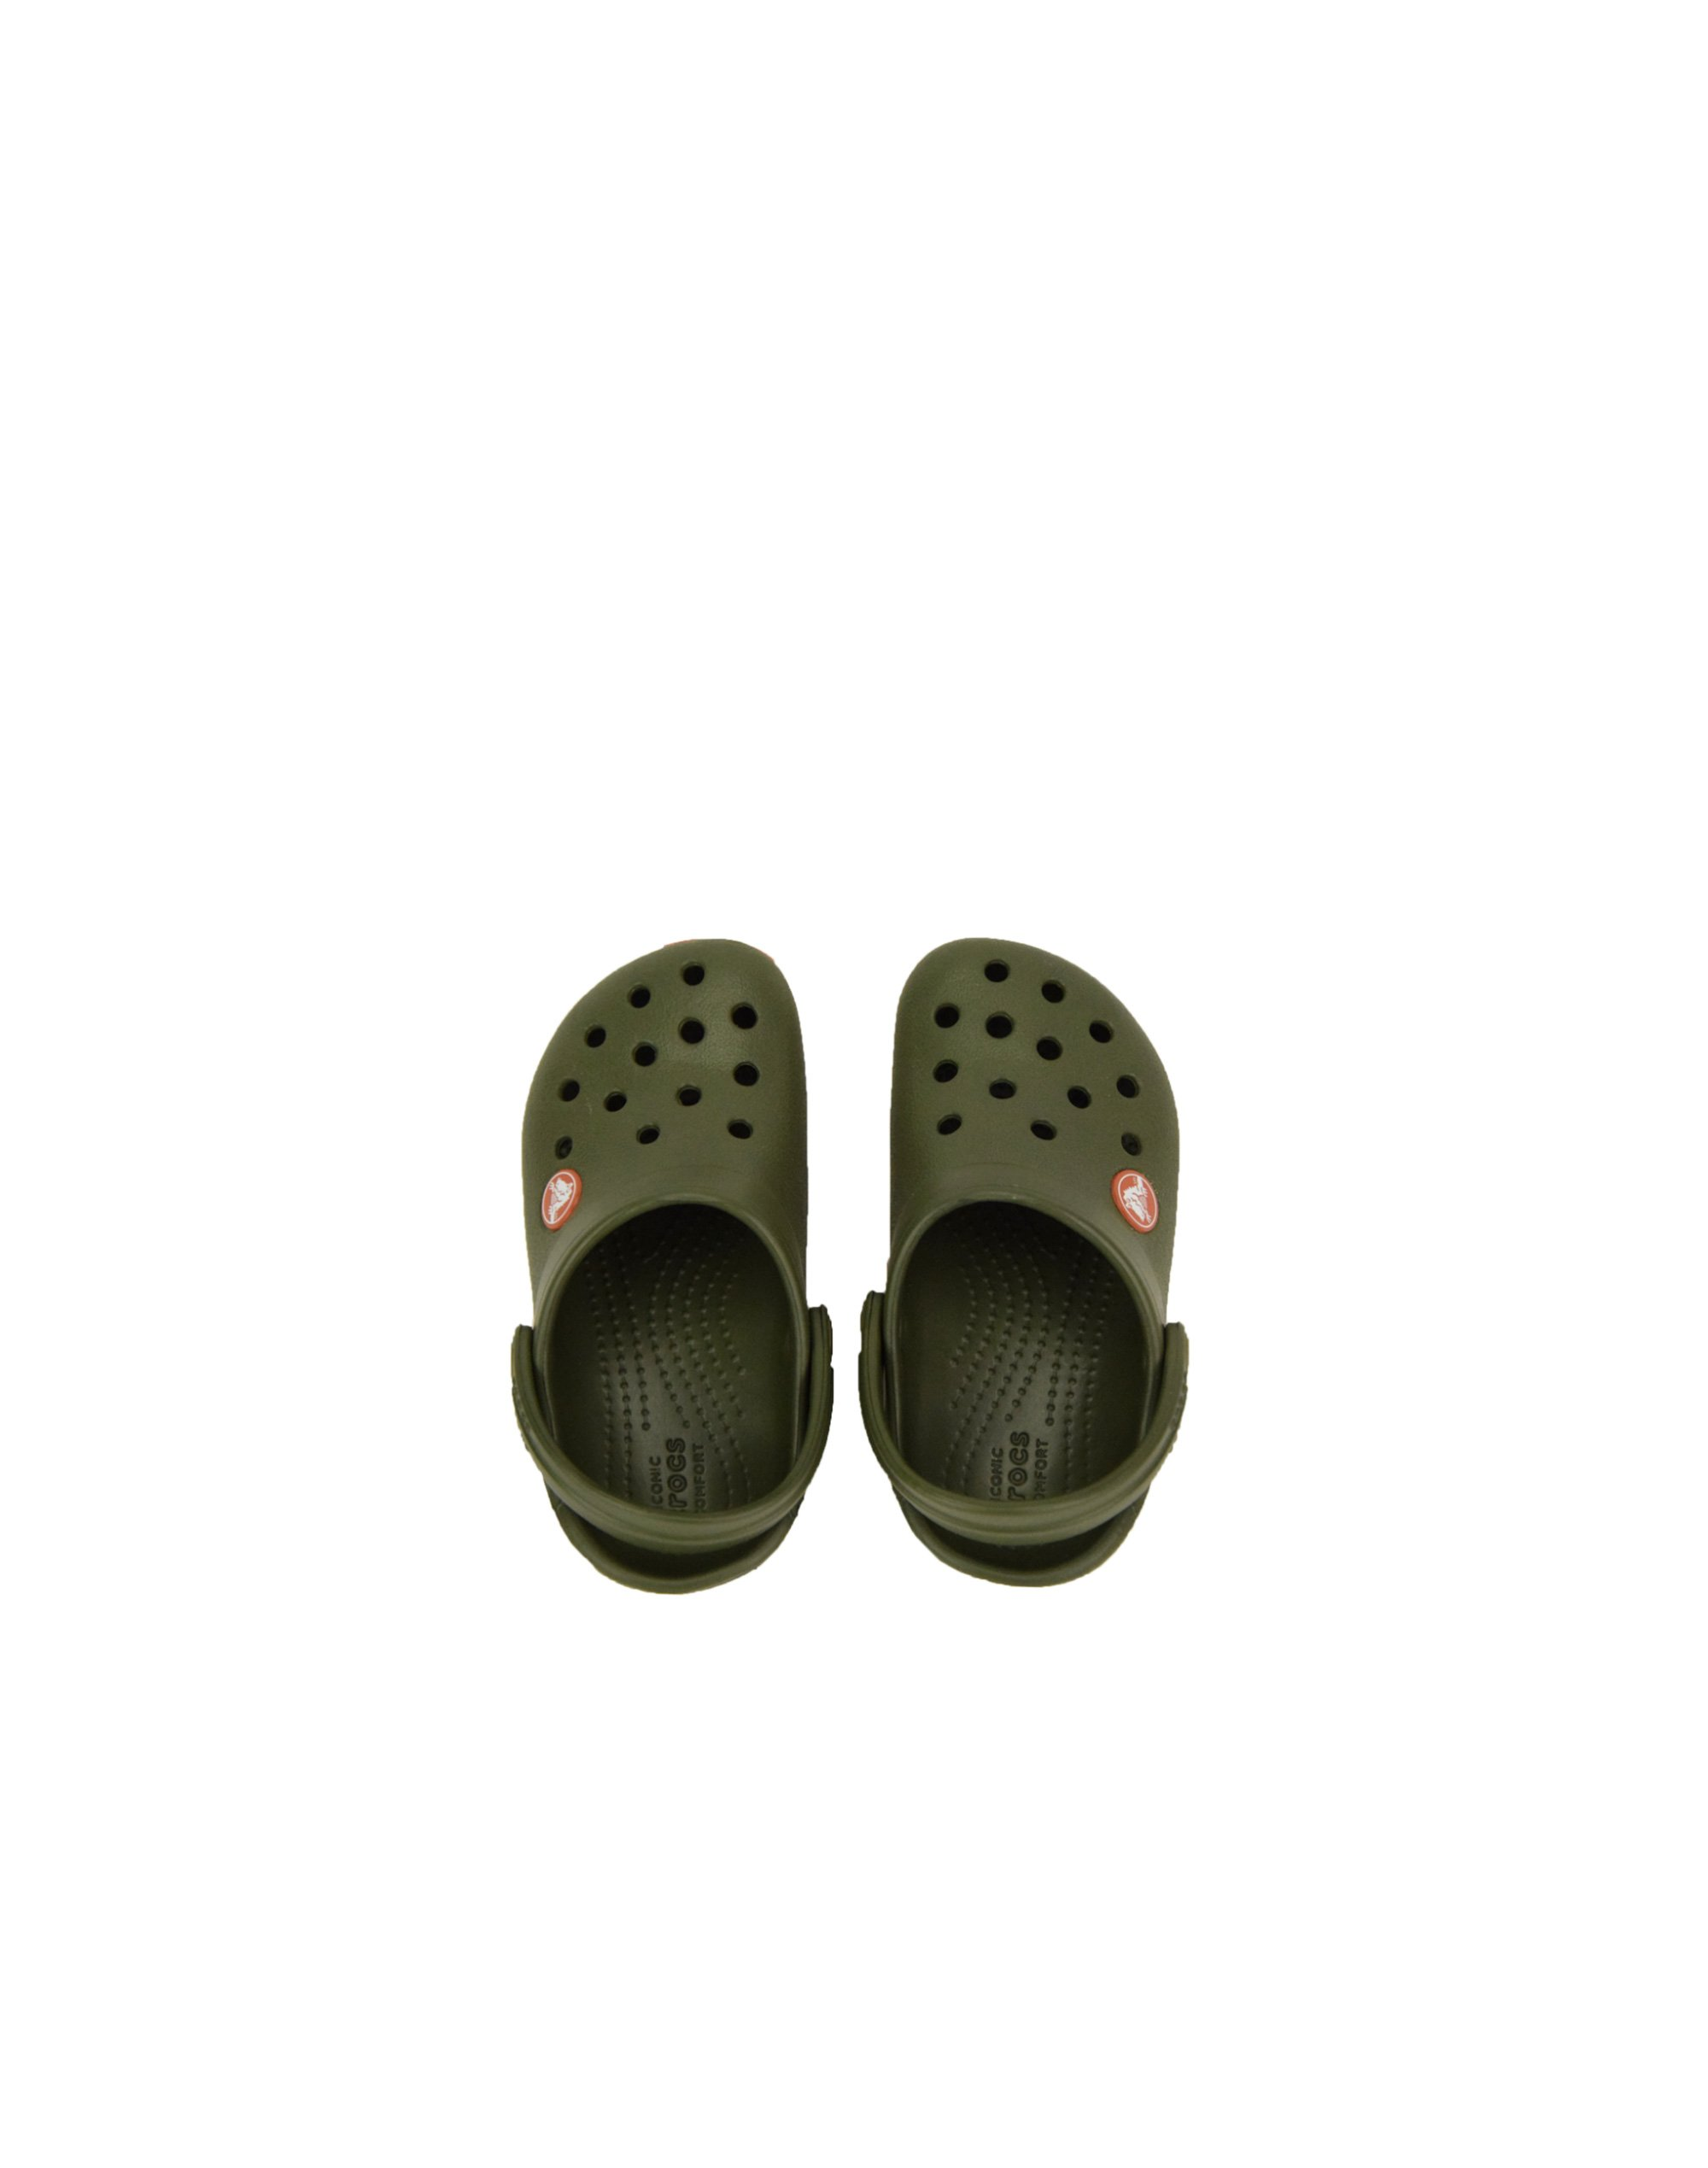 Crocs Crocband Clog Kids (204537-3TB) Army Green/Burnt Sienna